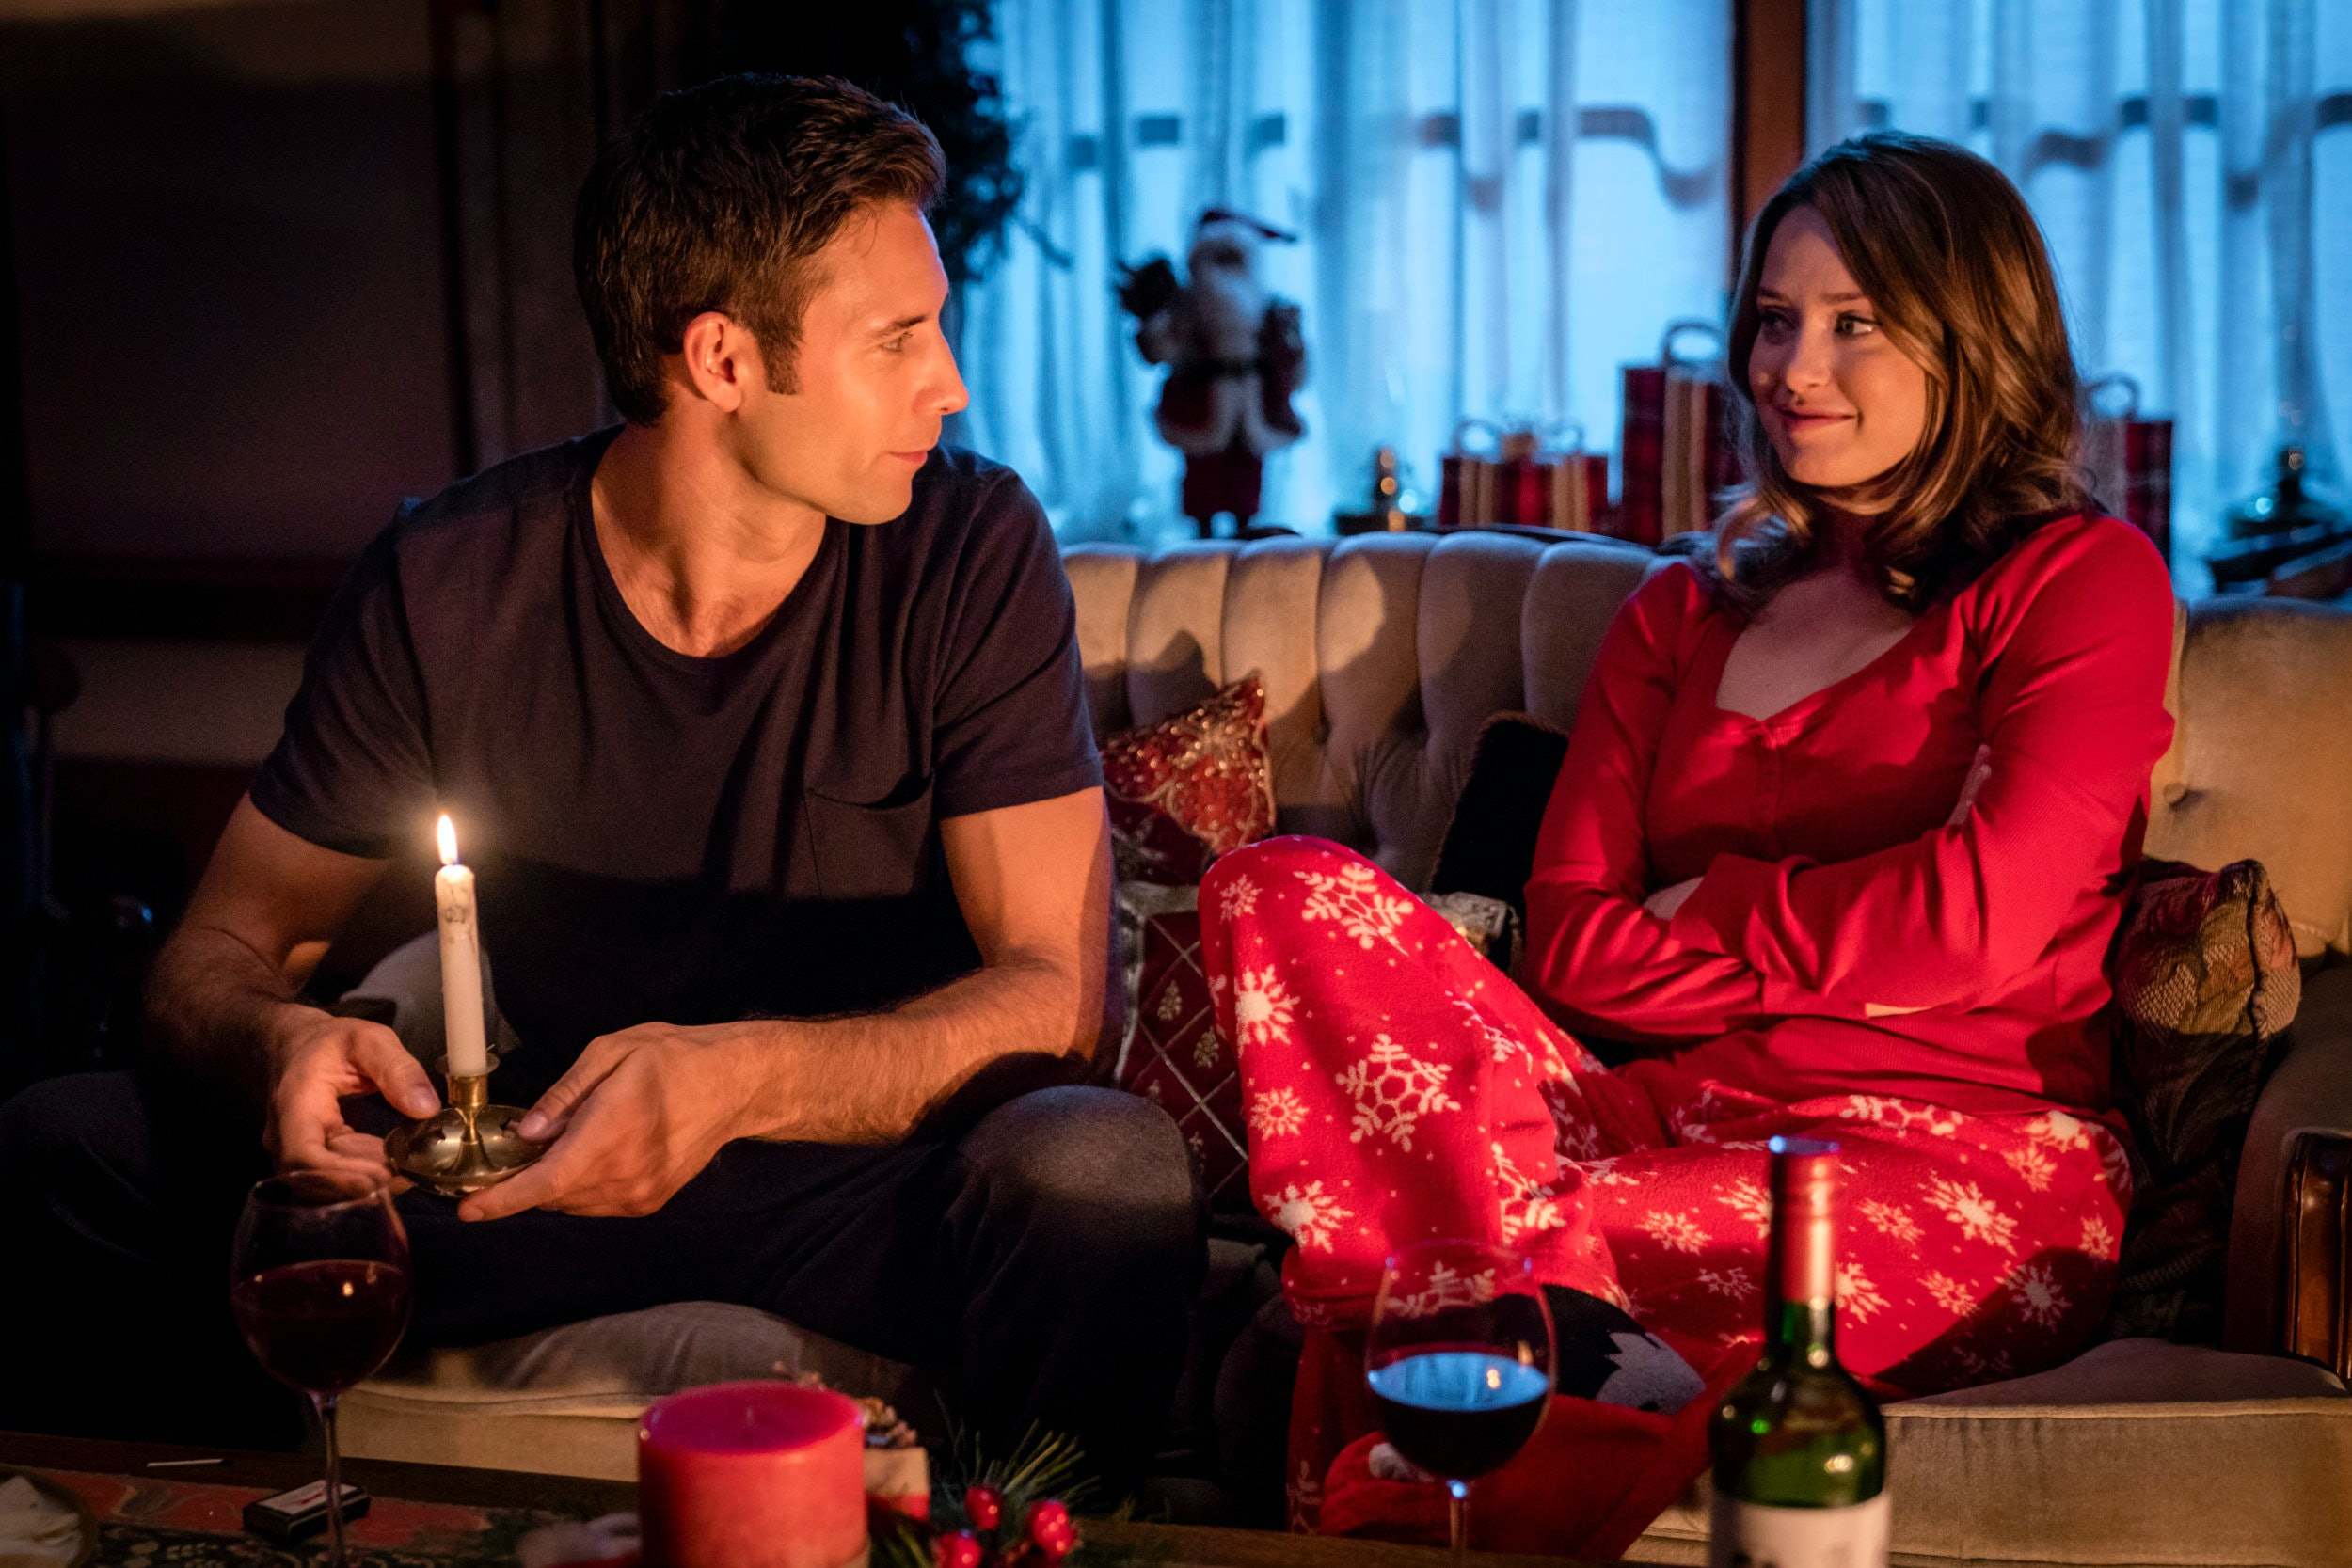 11 hallmark christmas movie romances that are actually a complete nightmare